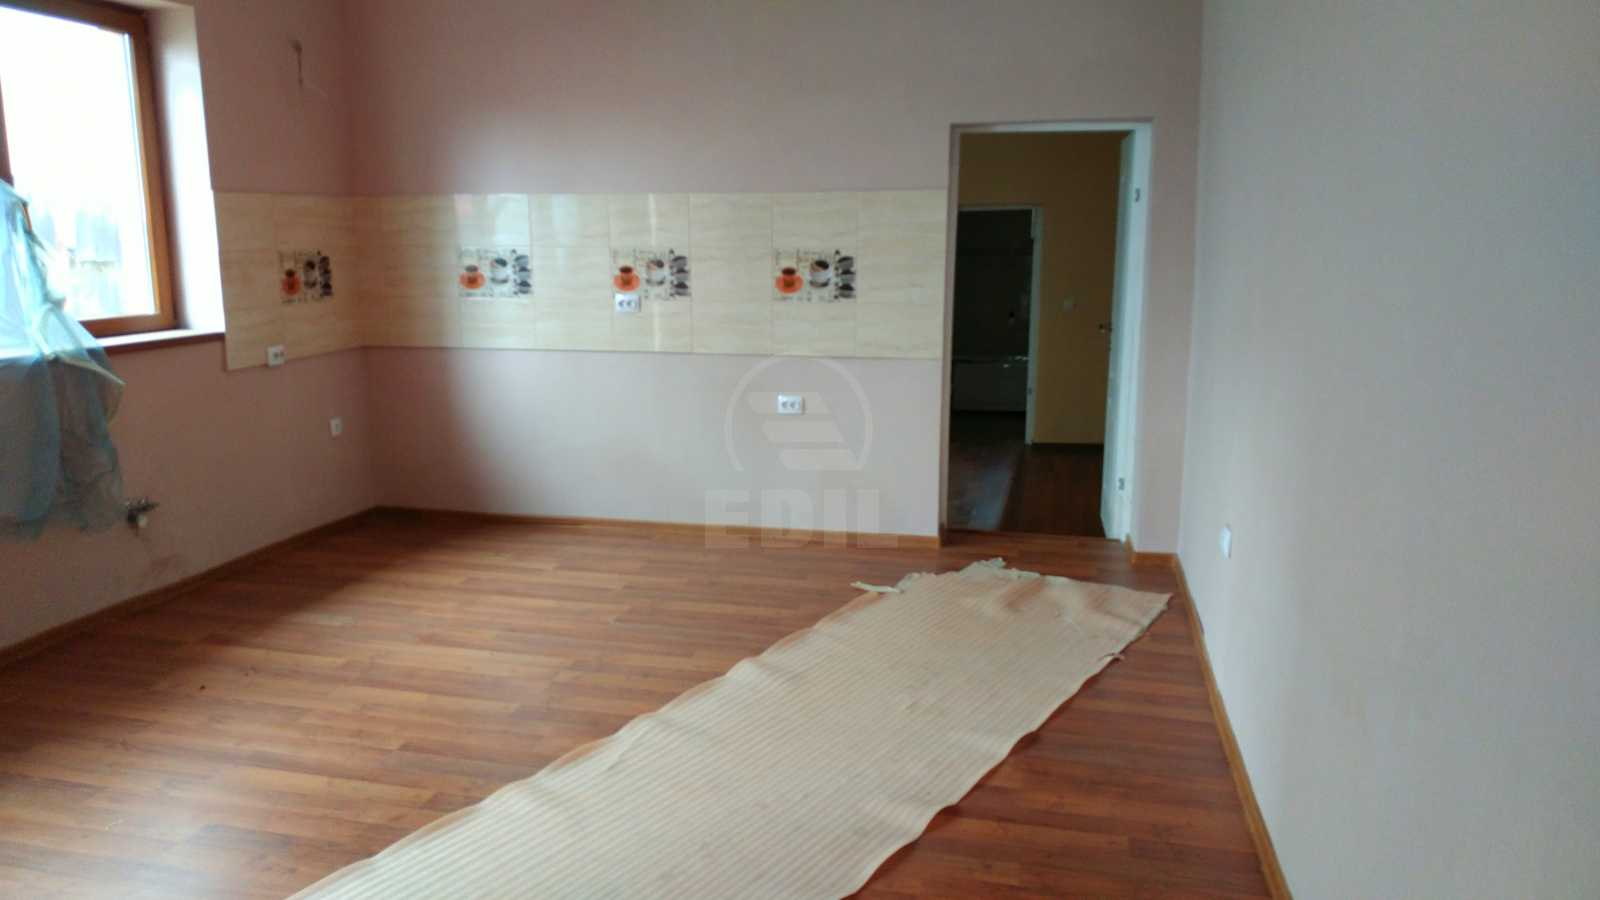 House for rent 3 rooms, CACJ284919-1